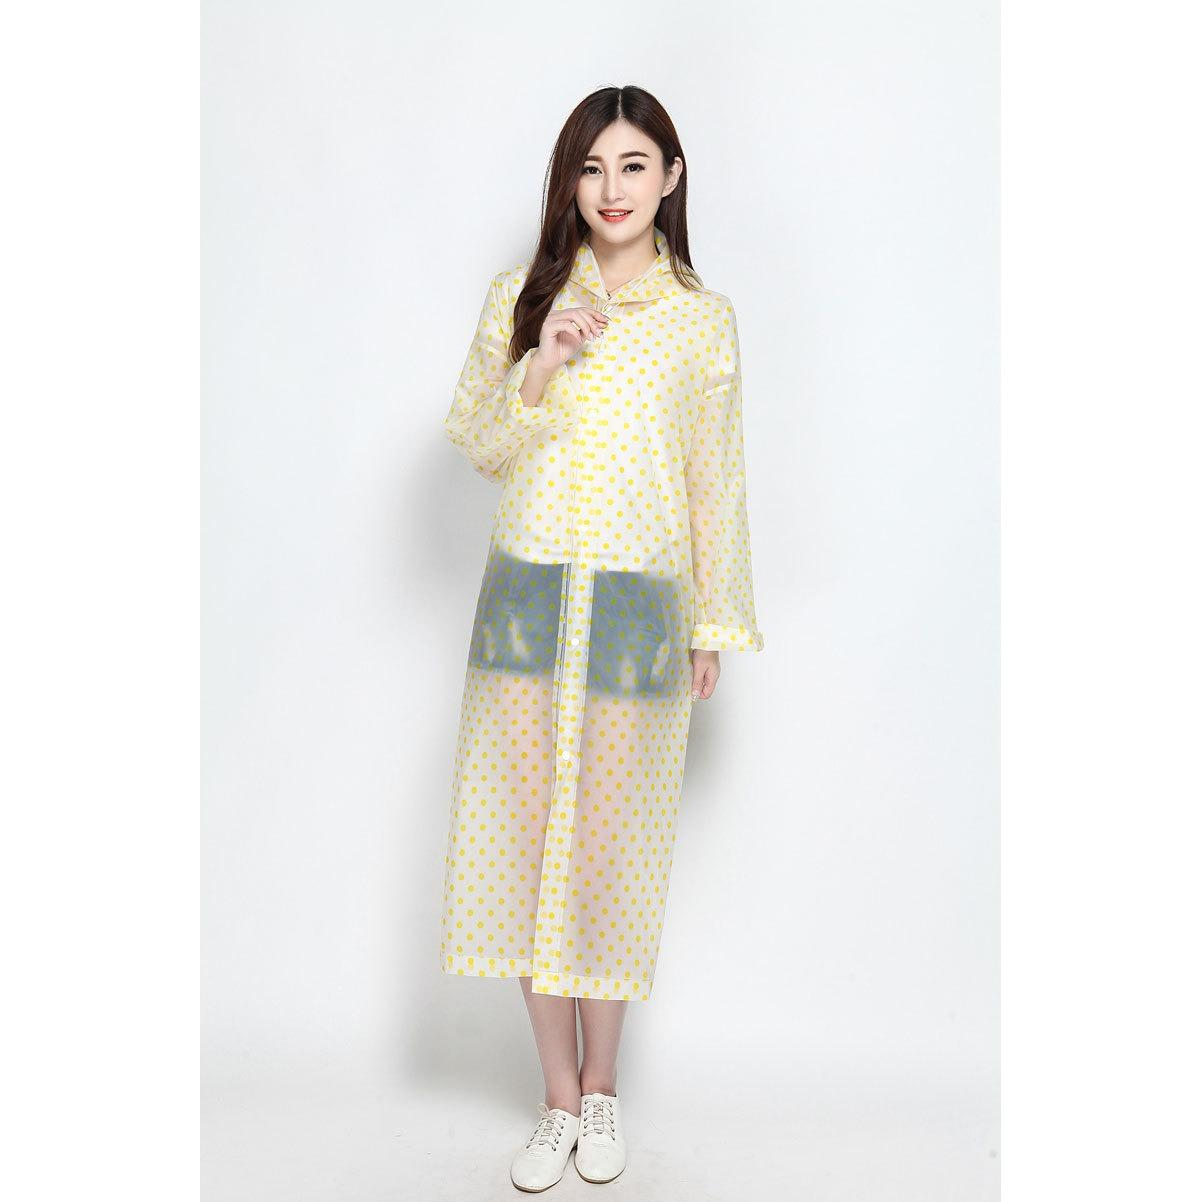 Jas Hujan Korea Polkadot Raincoat Poncho Ponco - Murah By Hoolee Shop.